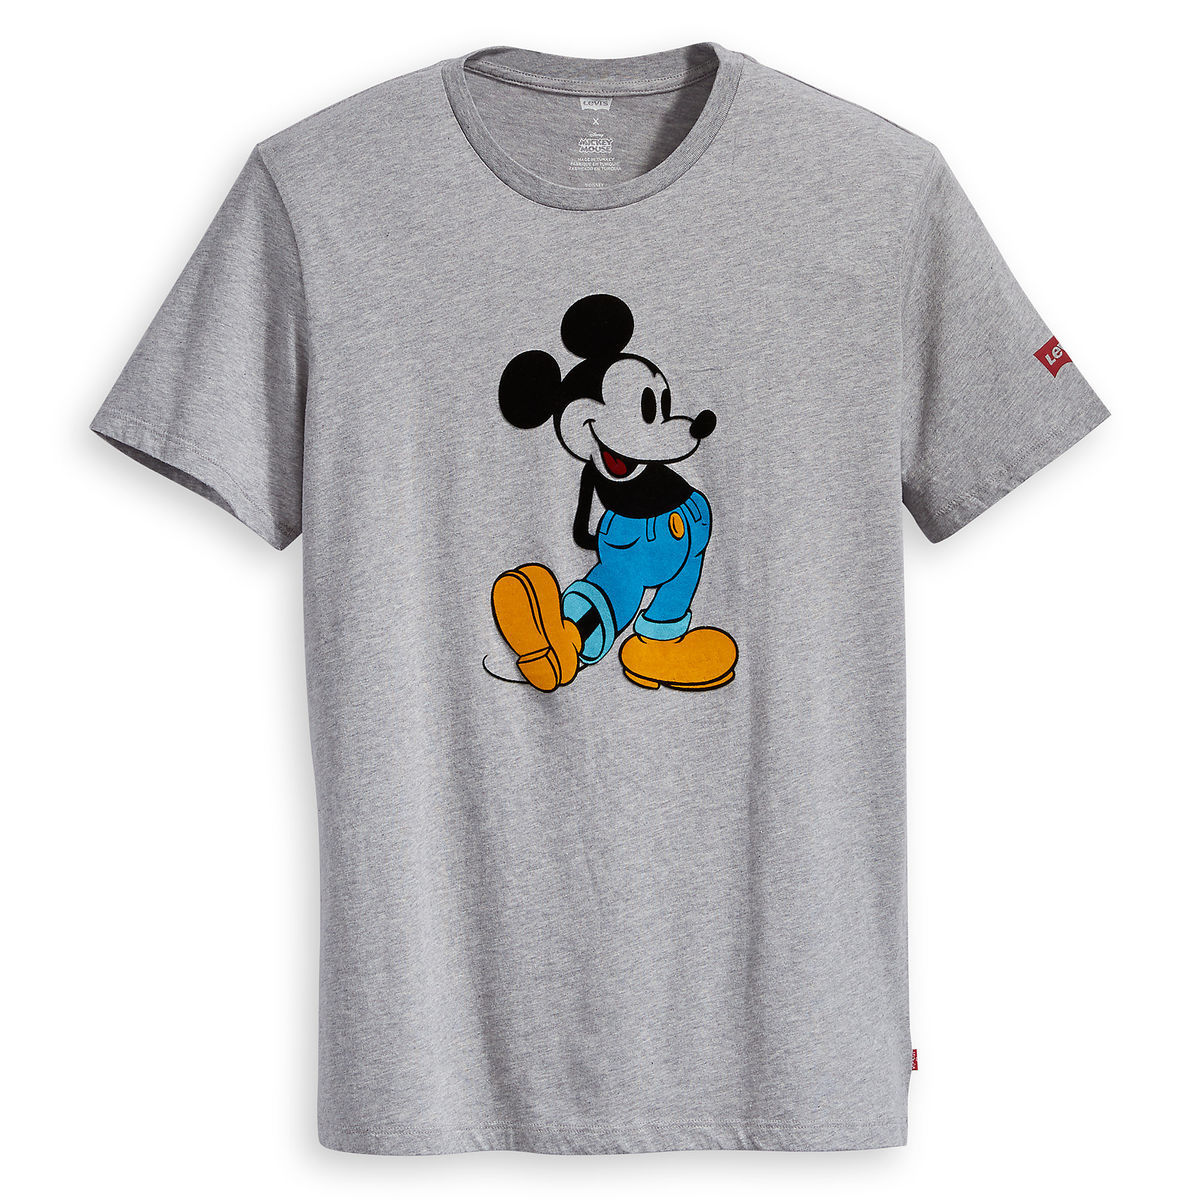 Mickey Mouse T Shirt For Men By Levis